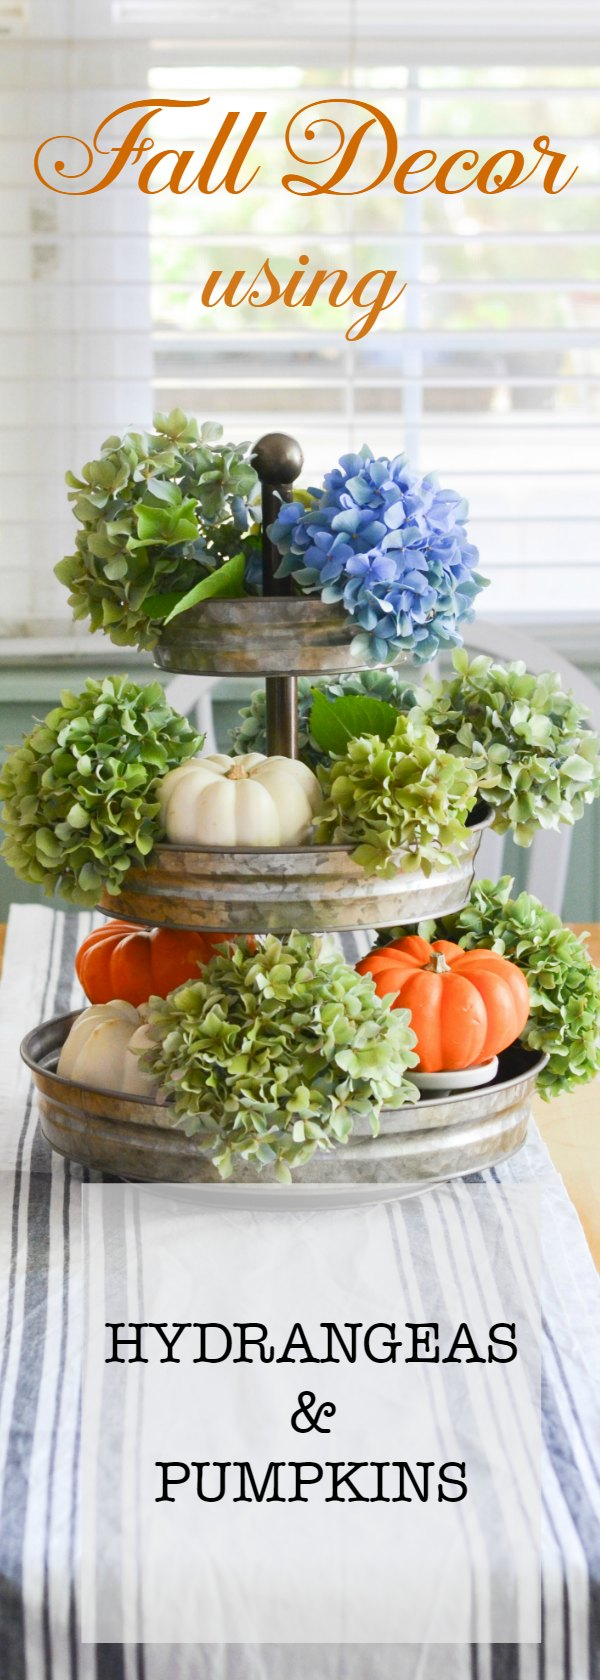 #Hydrangeas and Pumpkins for Fall. Natural elements that are subtle yet so beautiful. Inexpensive way to bring #Fall into your #decor.